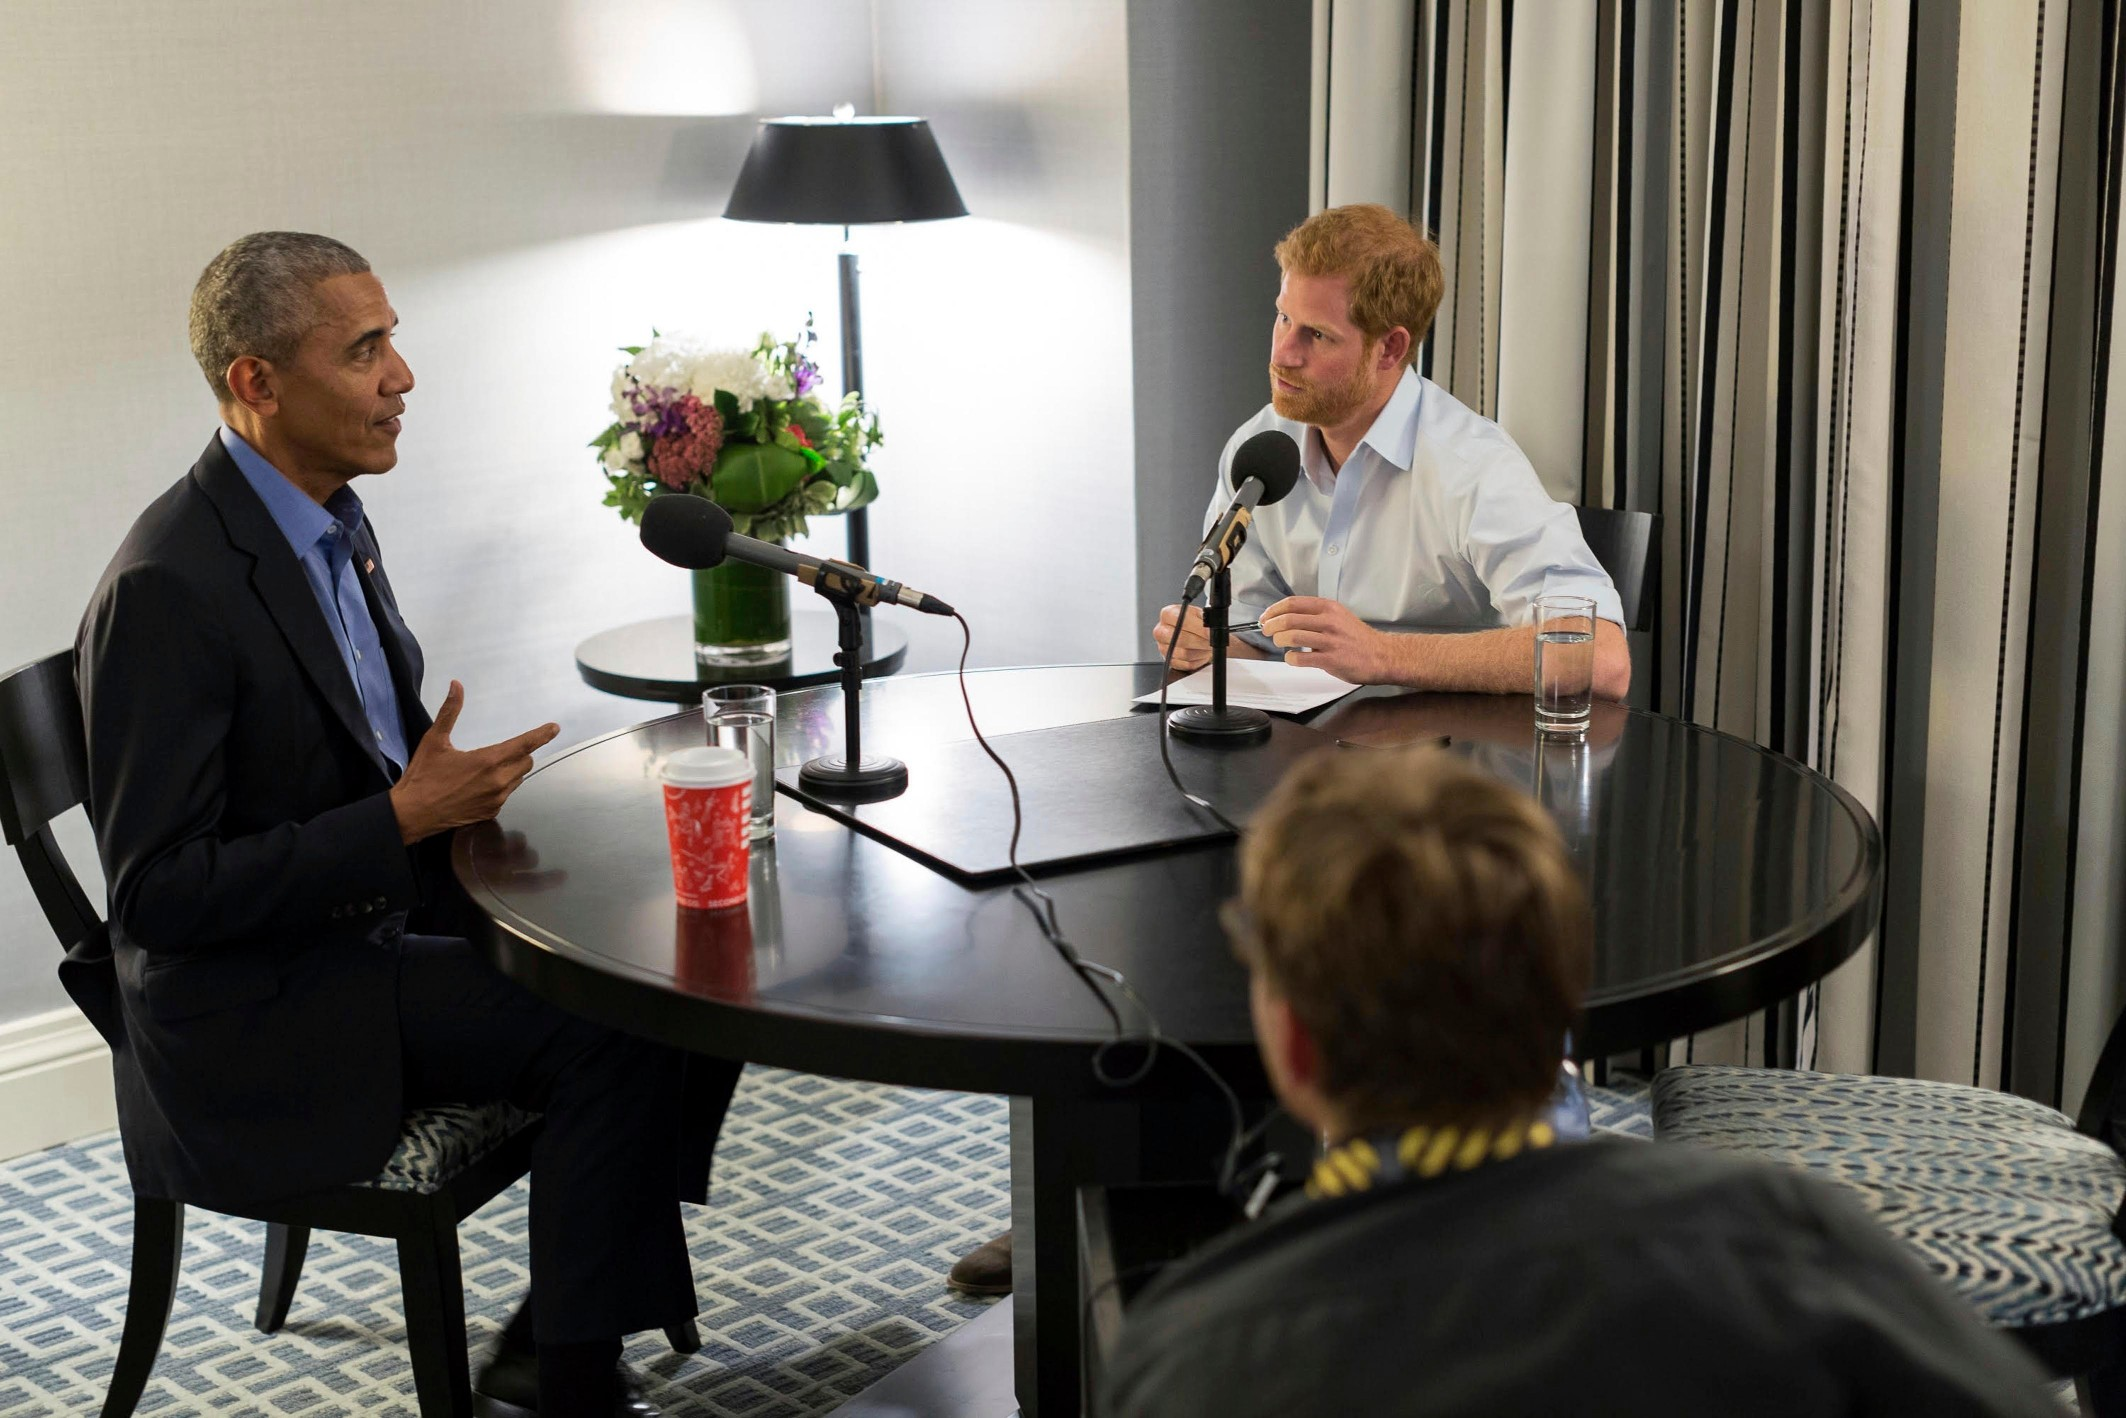 In this photo issued by Kensington Palace courtesy of the Obama Foundation, Britain's Prince Harry, right, interviews former US President Barack Obama. (Kensington Palace courtesy of The Obama Foundation via AP)